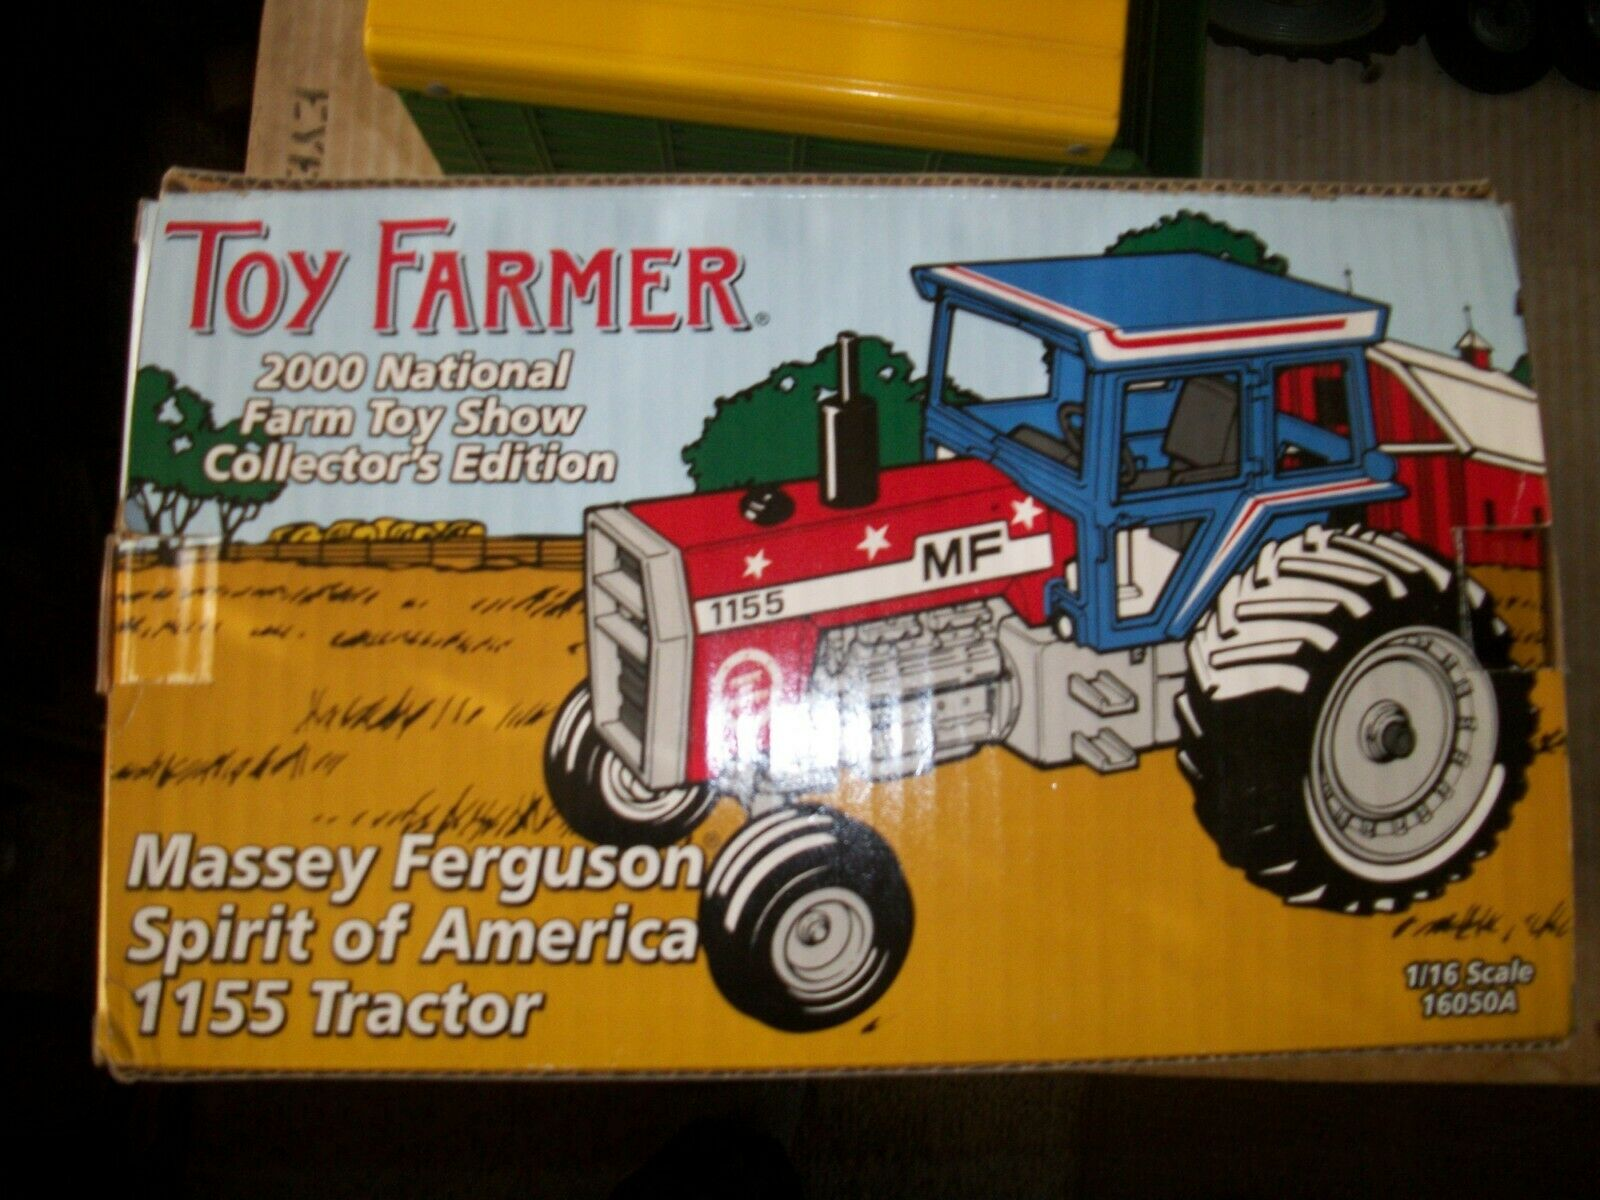 Toy FARMER spirit of America 1155 tractor with gold coin 1 16 red,white&blueeeeeee